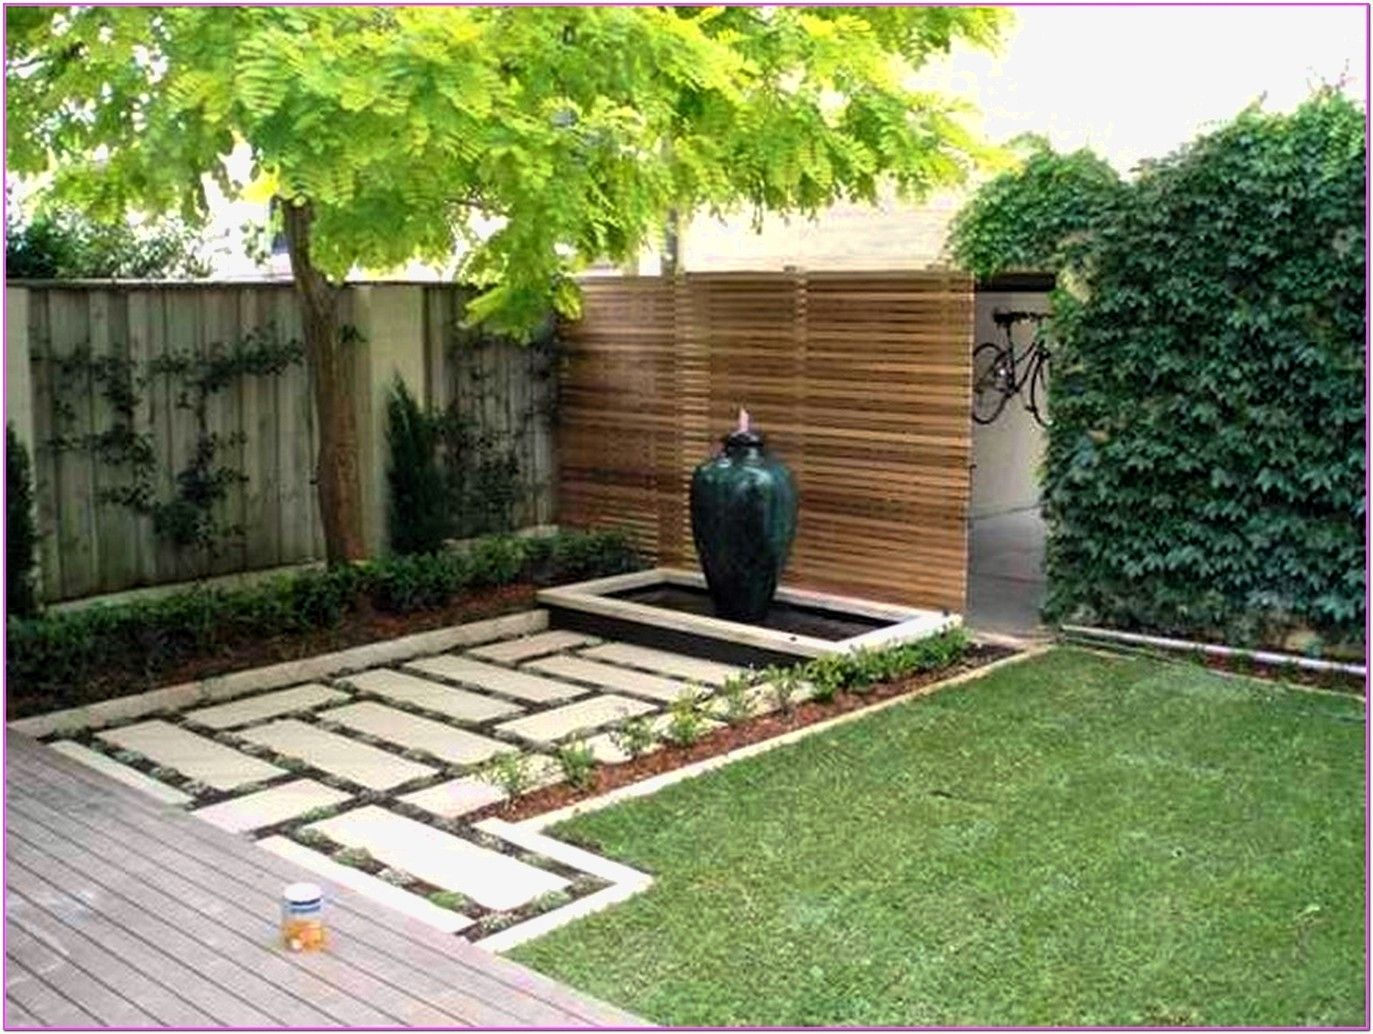 Landscaping ideas for small yards on a budget - Backyard Landscape Ideas Cheap Thorplc Com